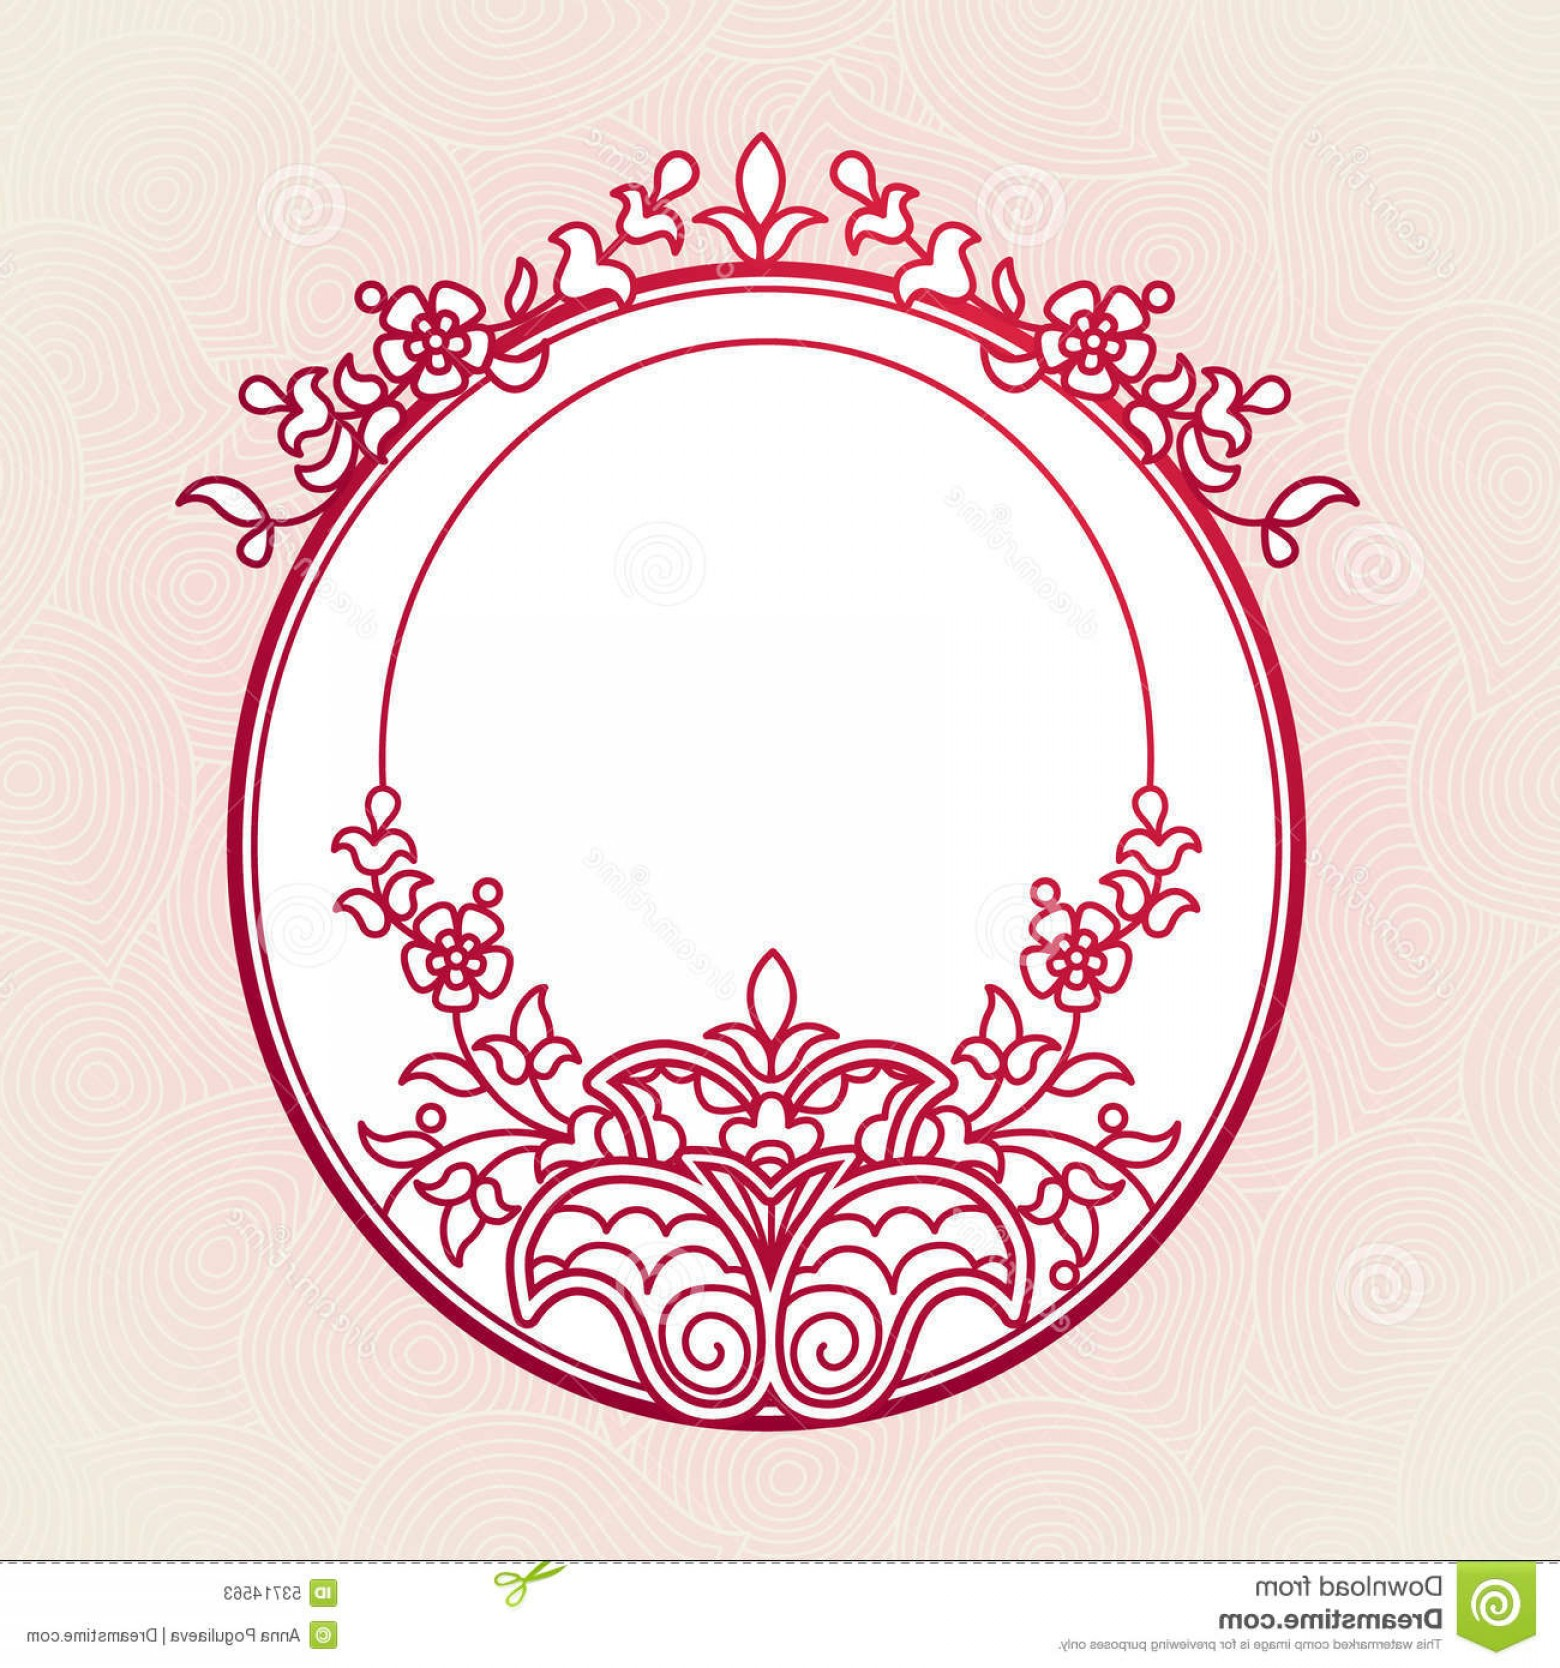 Filigree Oval Frame Vector: Stock Illustration Filigree Vector Frames Eastern Style Frame Ornate Element Design Place Text Ornamental Red Border Wedding Image